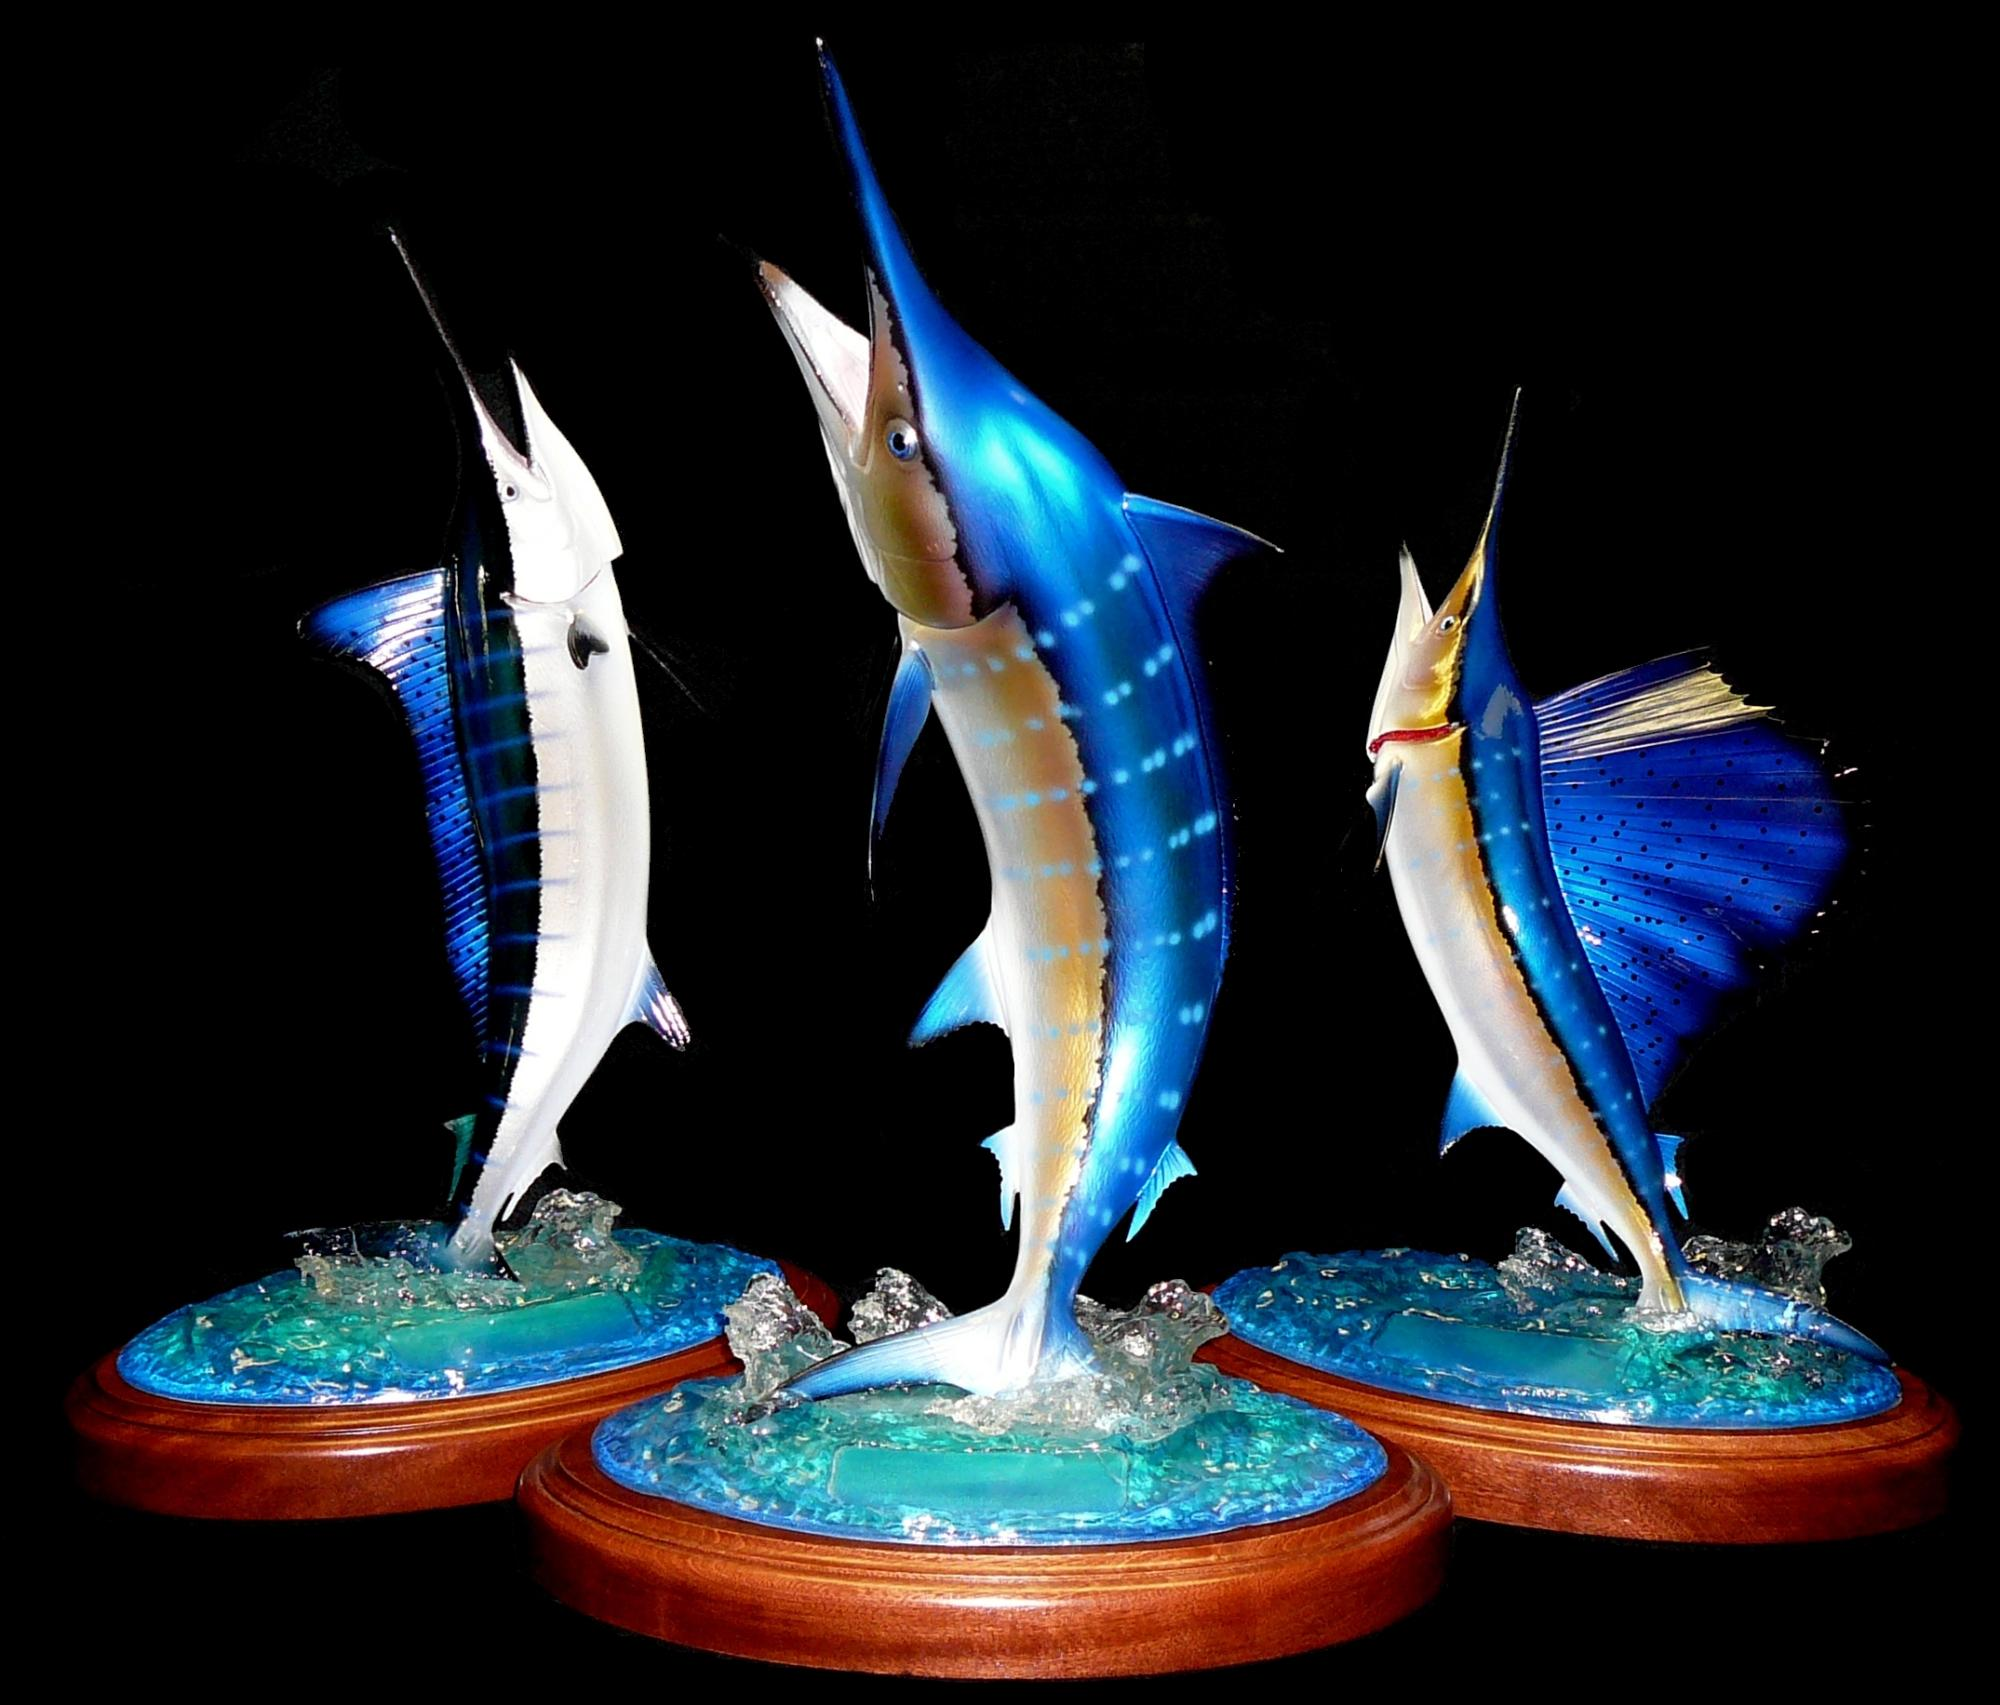 B_Marlin28__Sailfish22__and_W_Marlin24.jpg